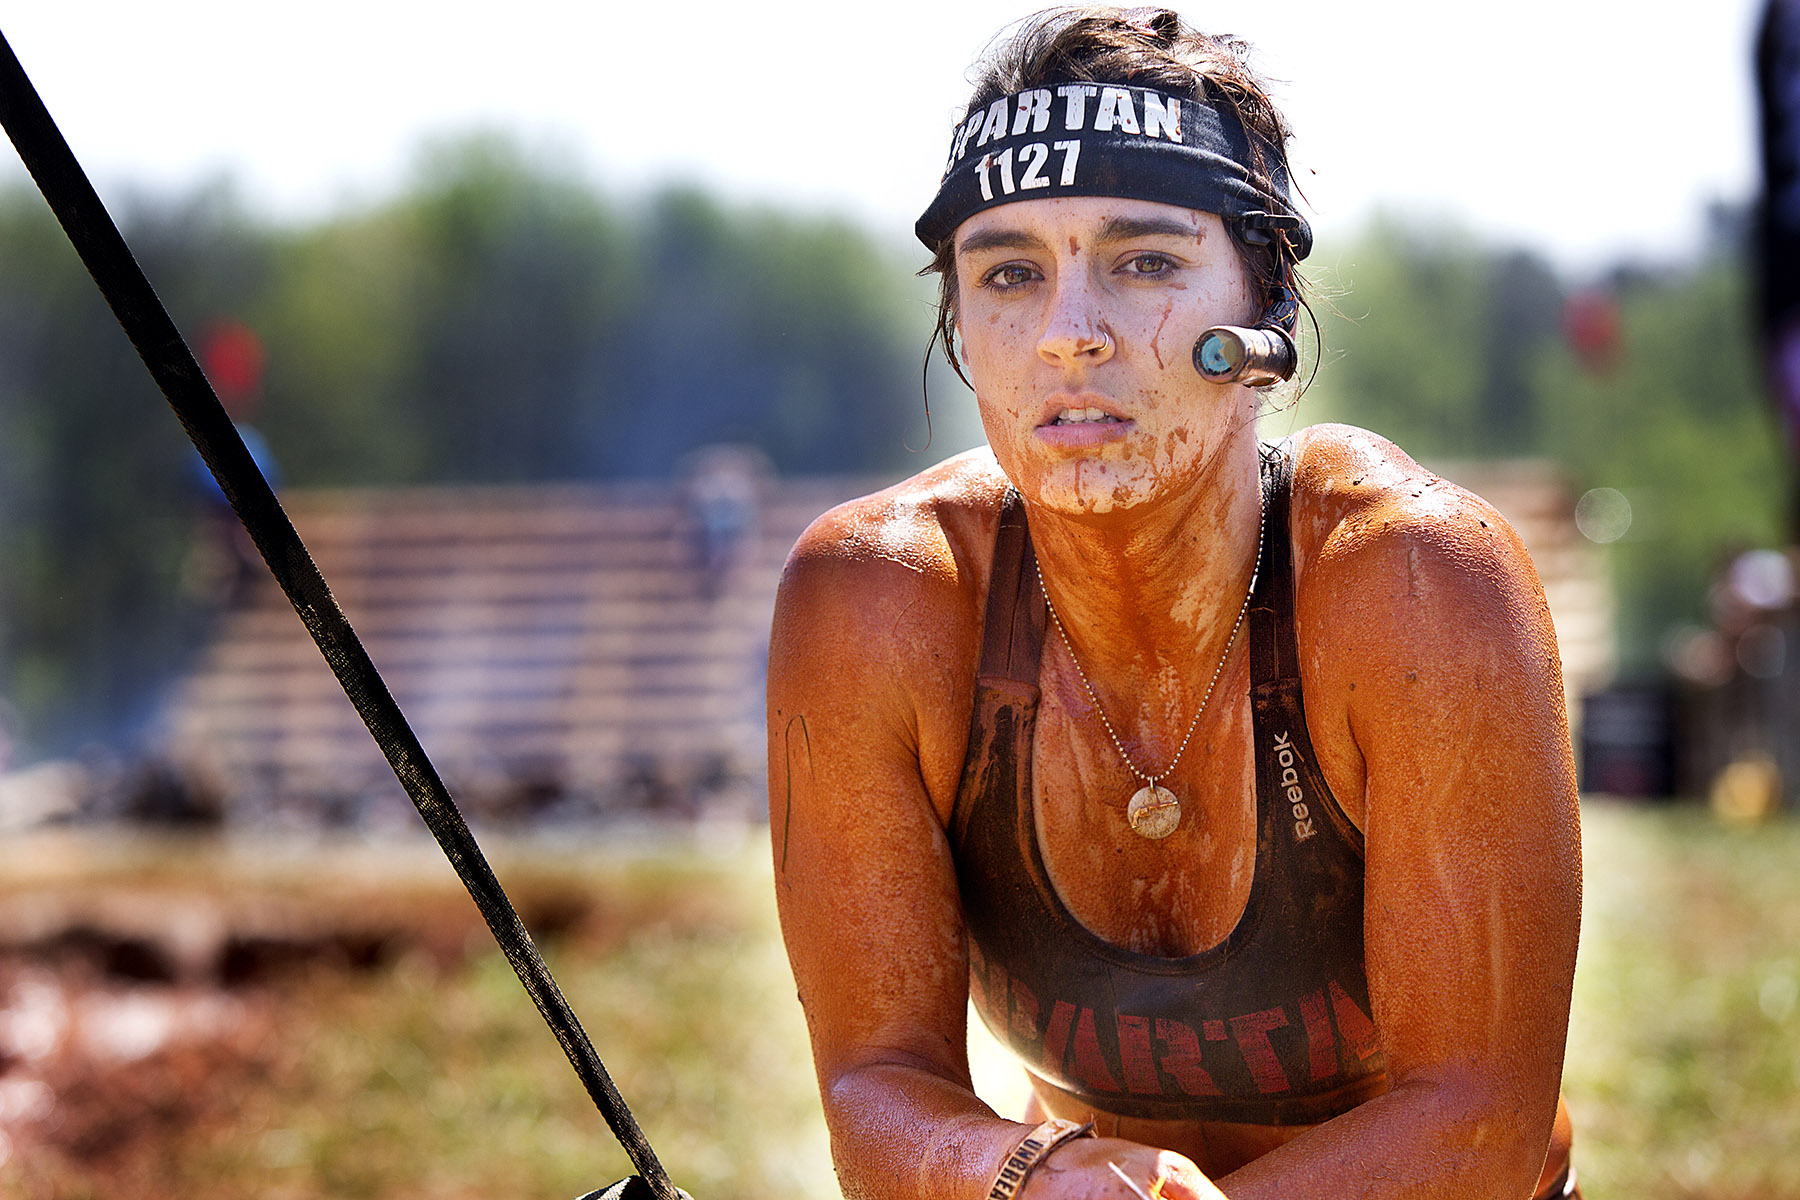 Mom Strong Reebok Spartan race partnership by Boston based commercial lifestyle photographer Brian Nevins